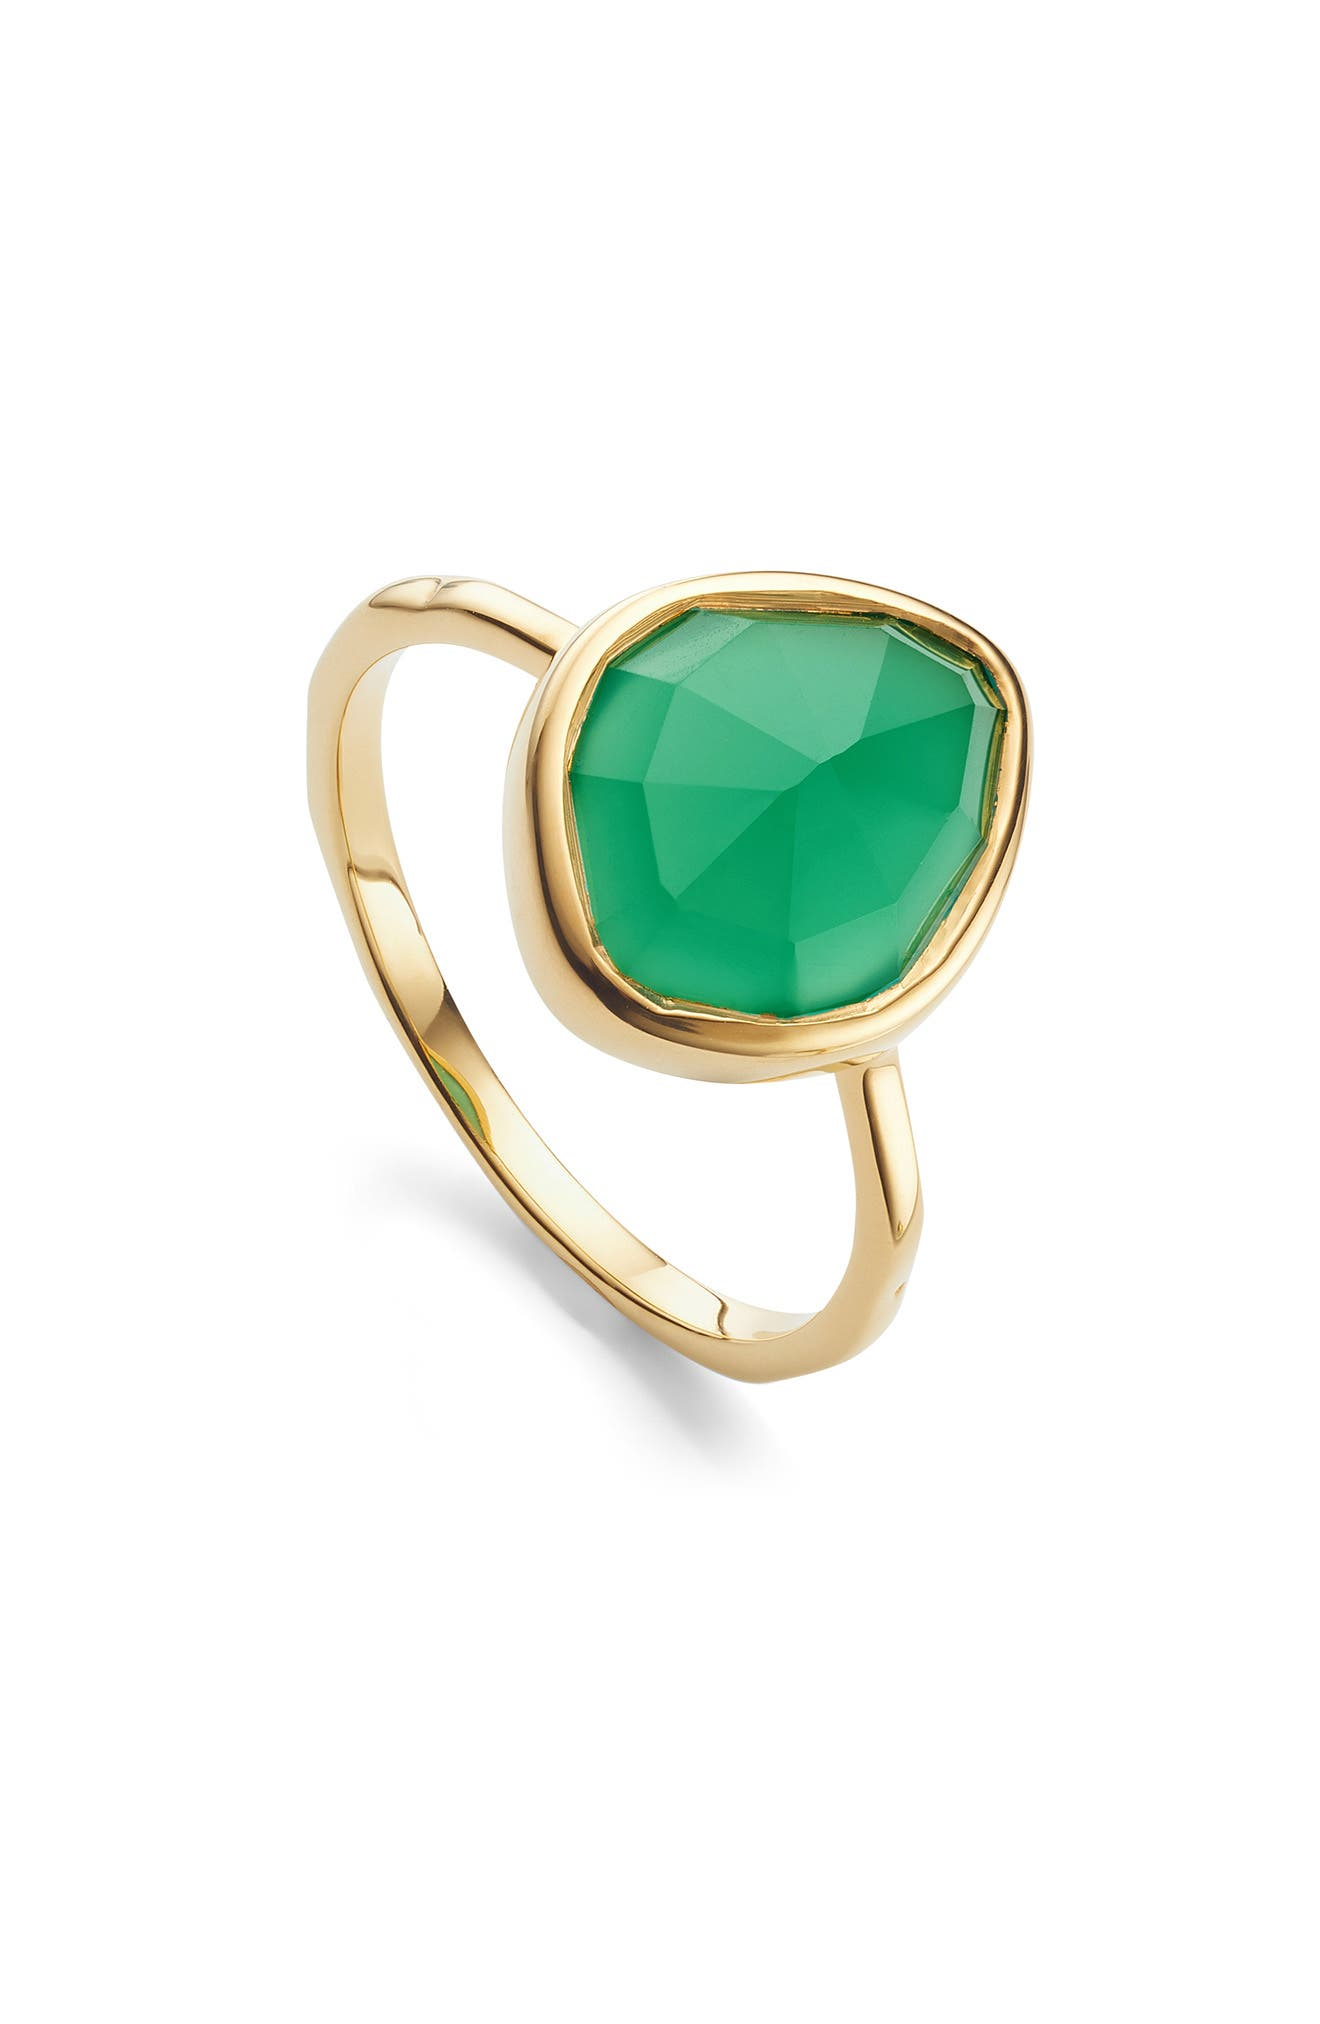 MONICA VINADER Siren Small Nugget Stacking Ring, Main, color, GOLD/ GREEN ONYX